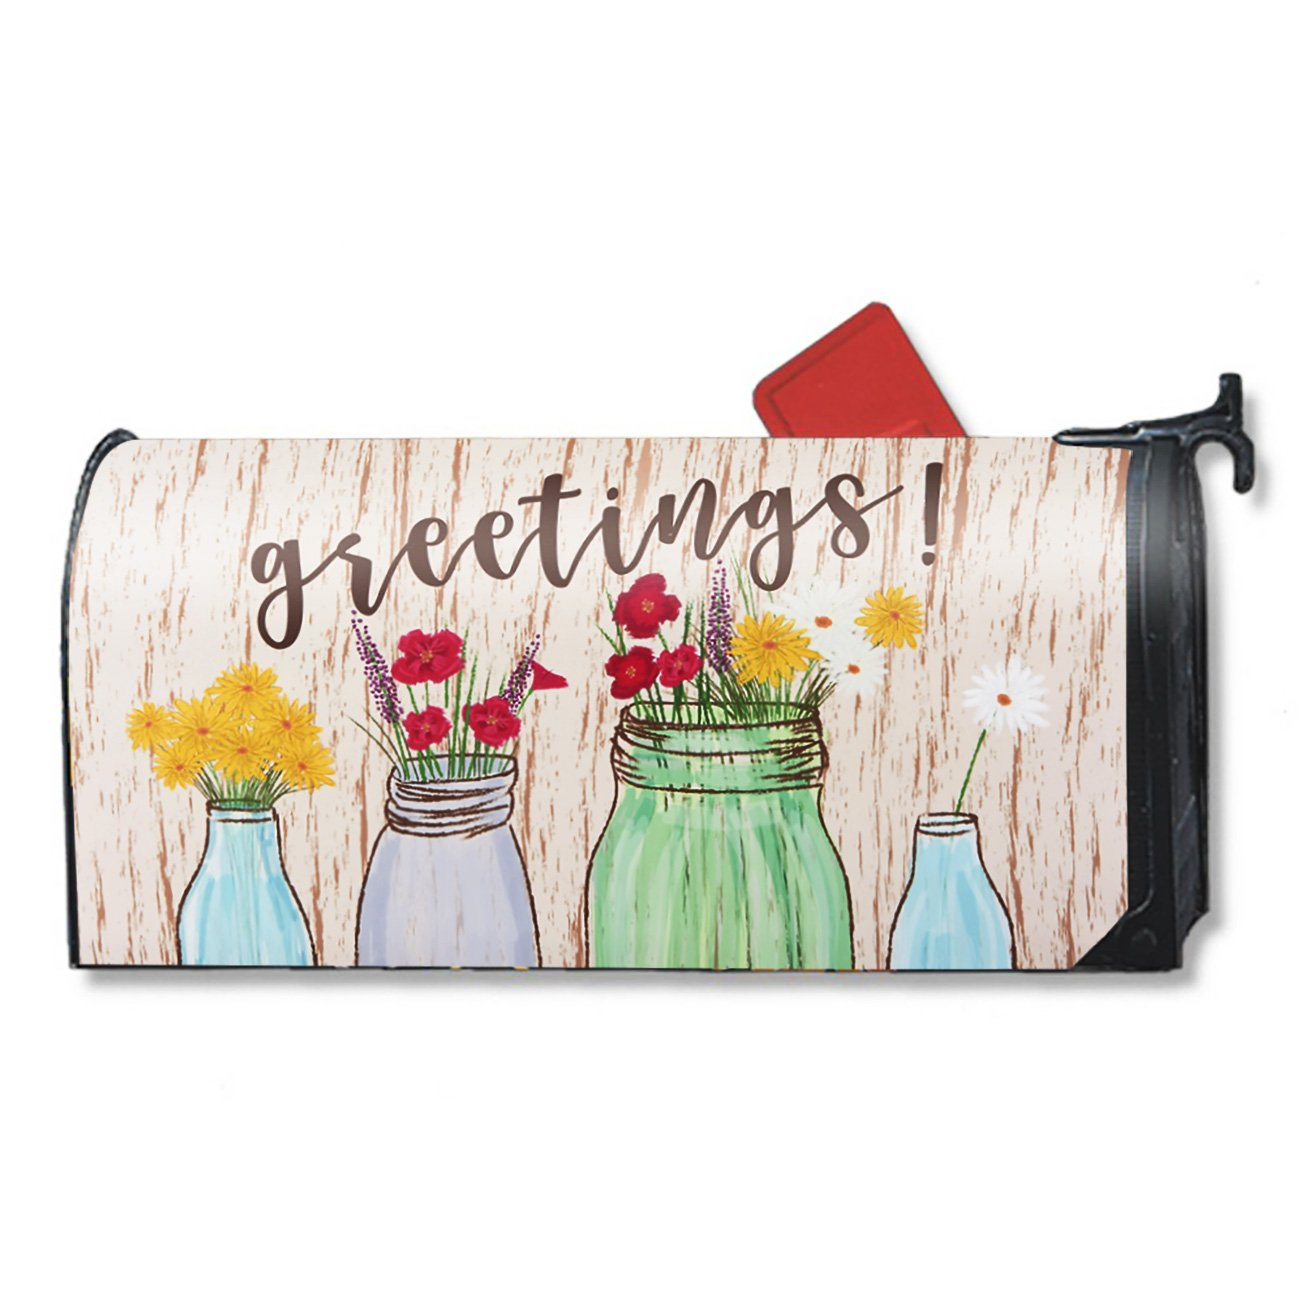 Juvale Magnetic Mailbox Cover - Greetings Mailbox Wrap with Decorative Flowers Illustration, Includes Adhesive Number, Standard Sized, 17.25 x 20.75 inches